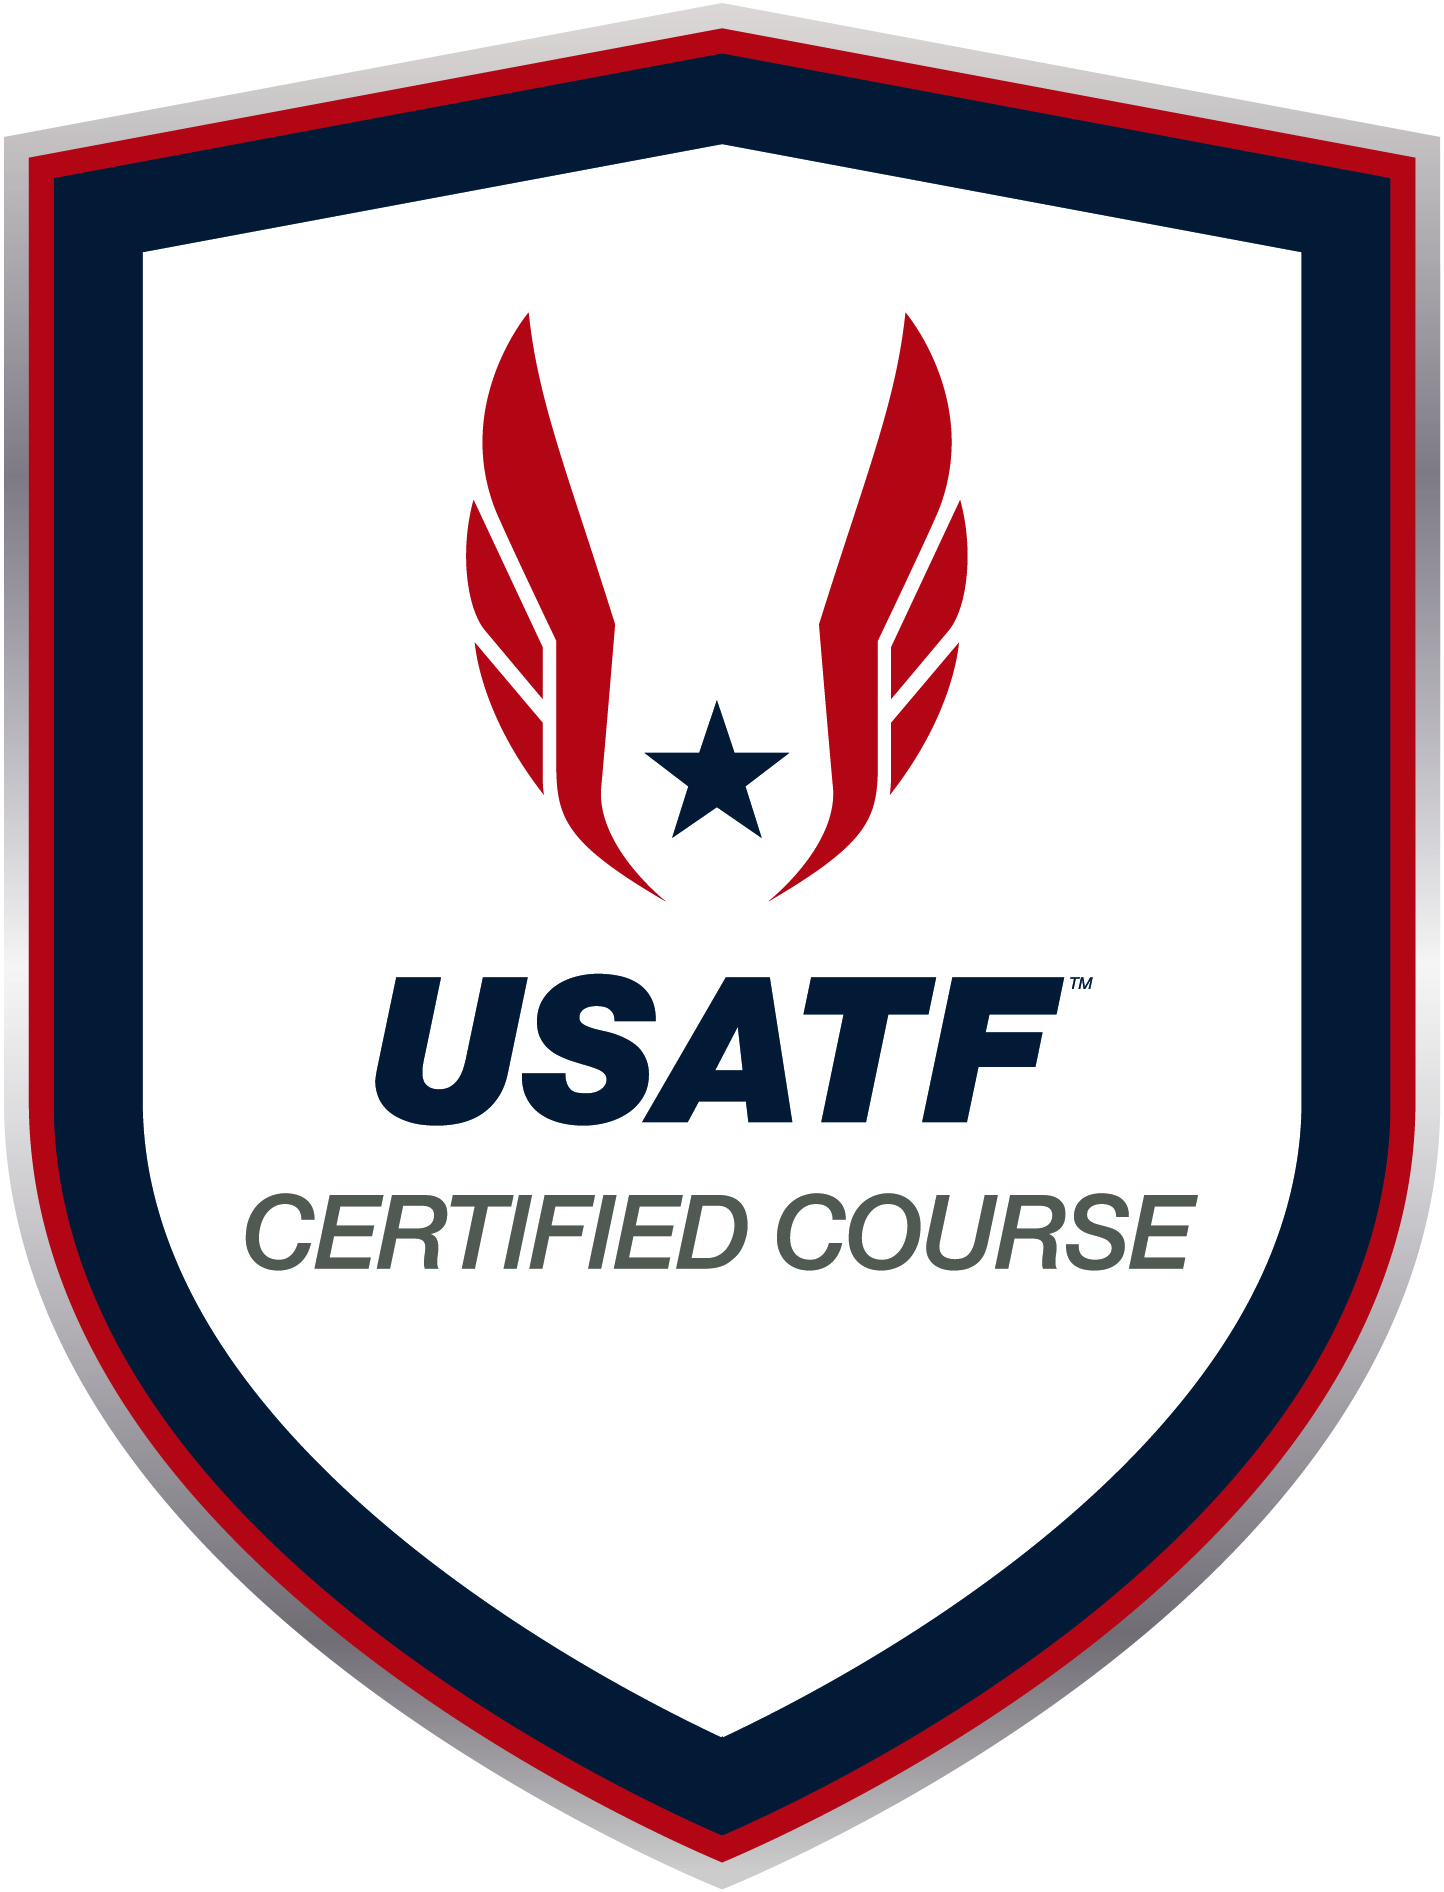 Blizzard Run is an officially certified course by USATF